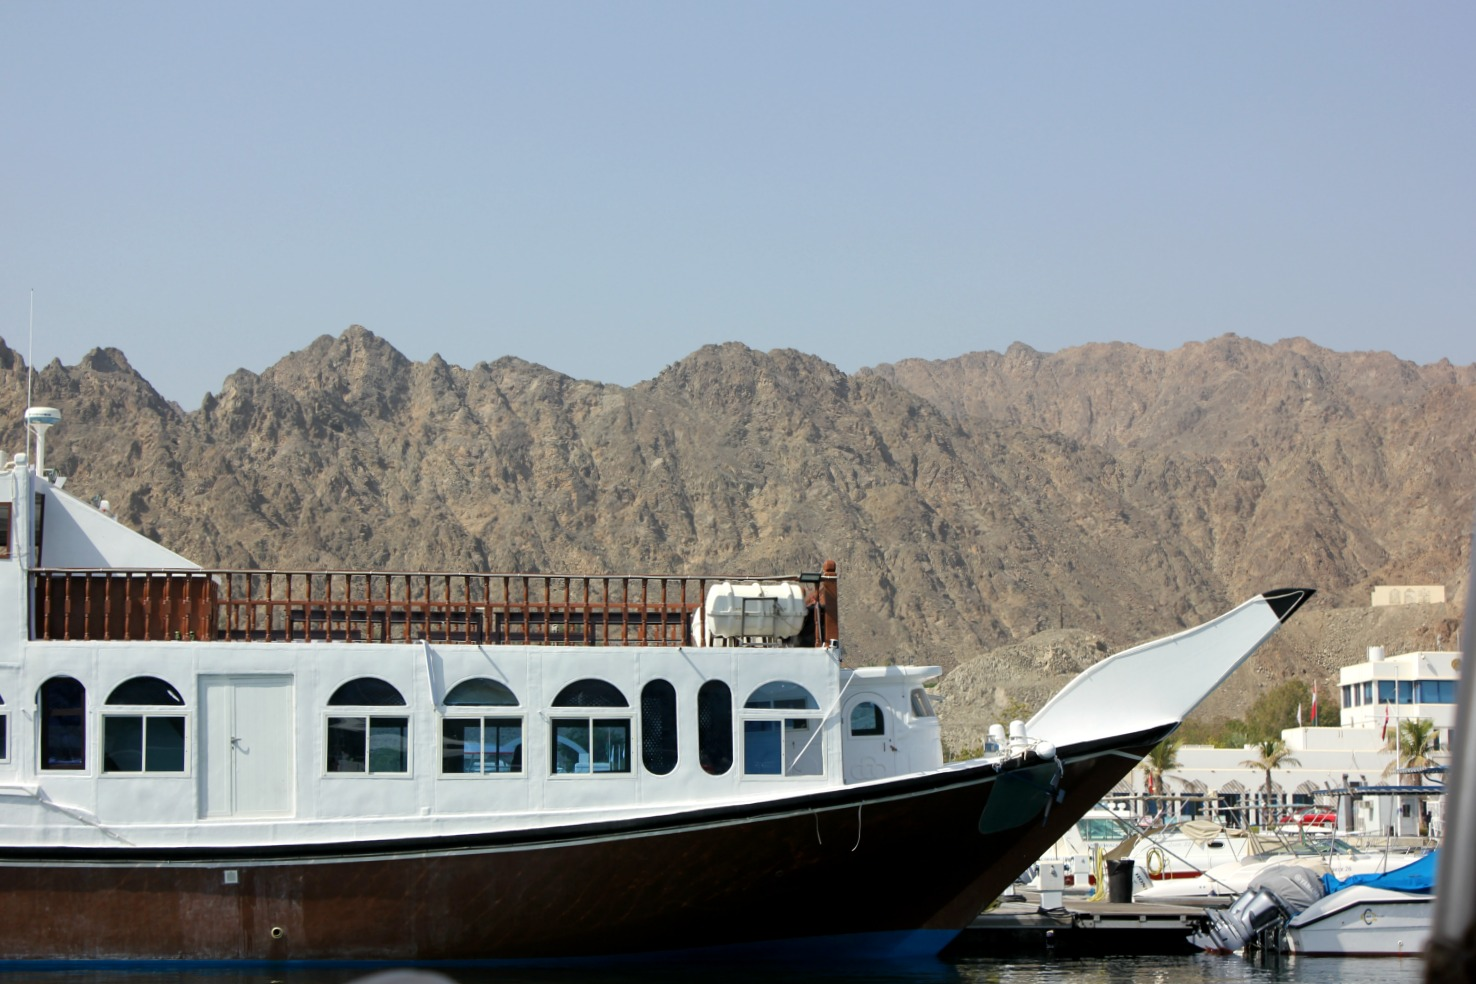 A boat moored at the marina with the mountains in the background - my tips for spending 24 hours in Muscat, Oman with kids